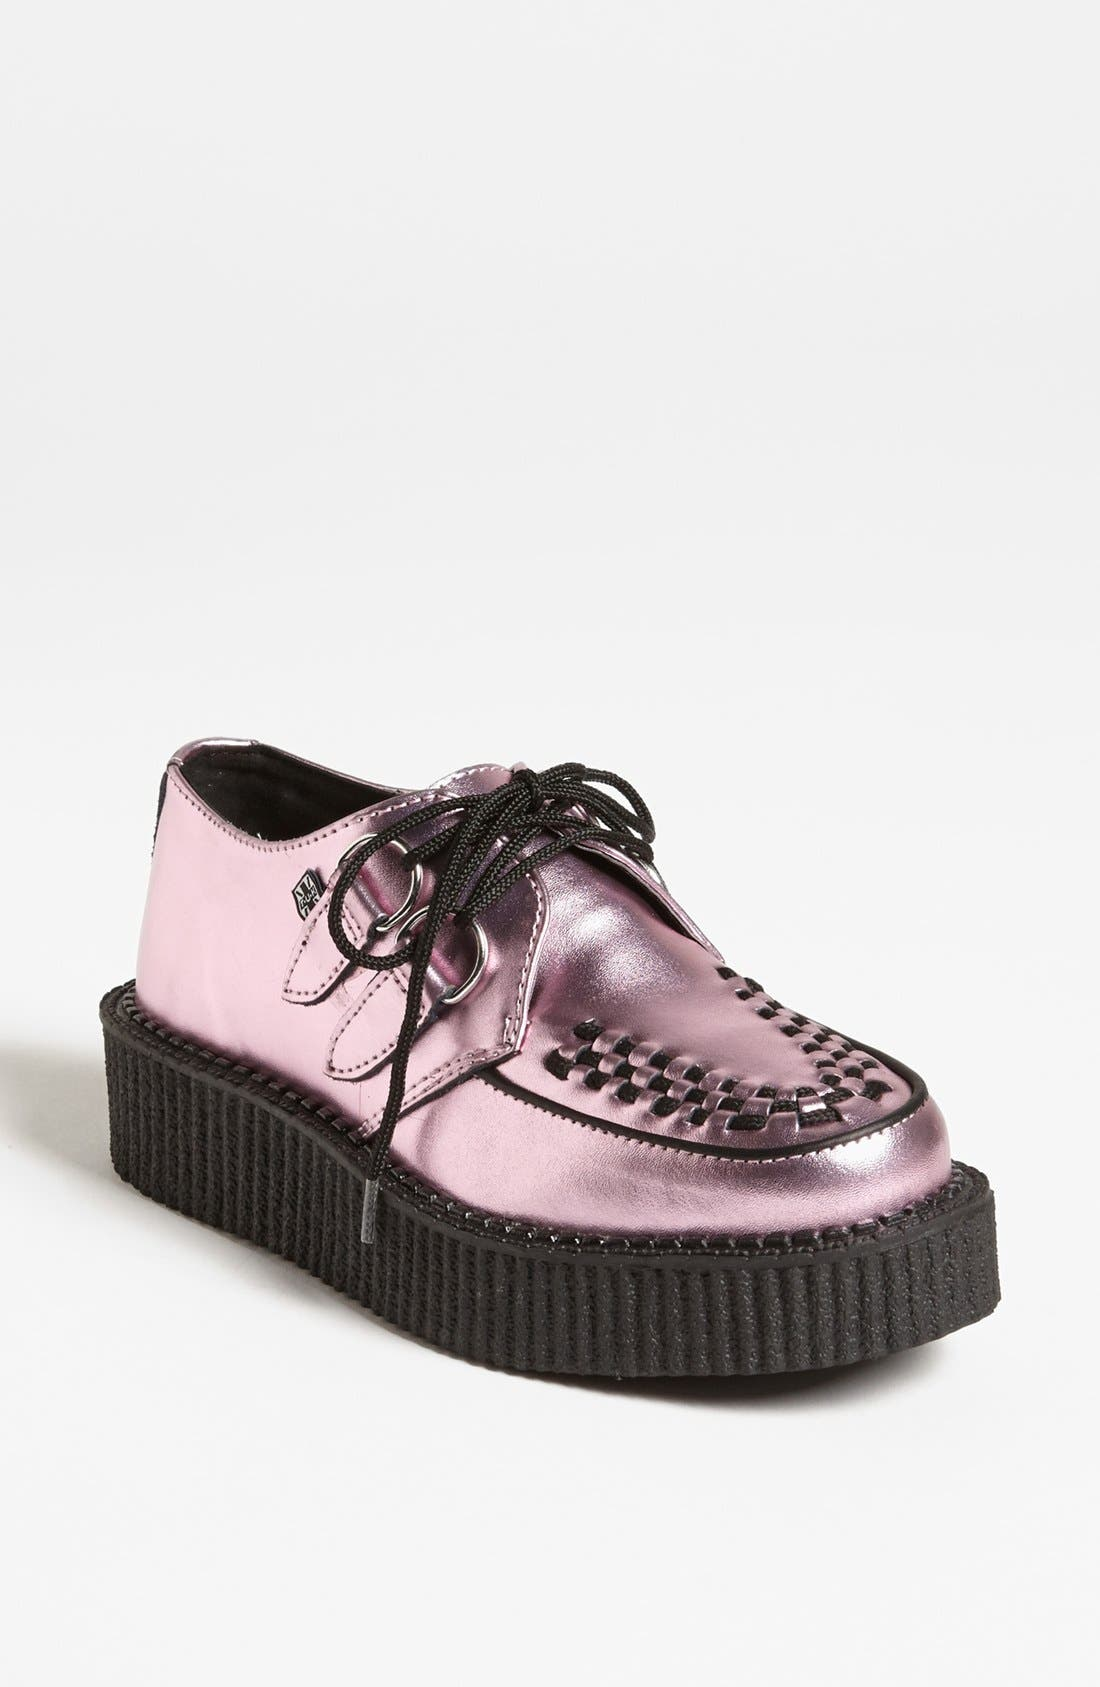 Main Image - T.U.K. 'A8429' Creeper